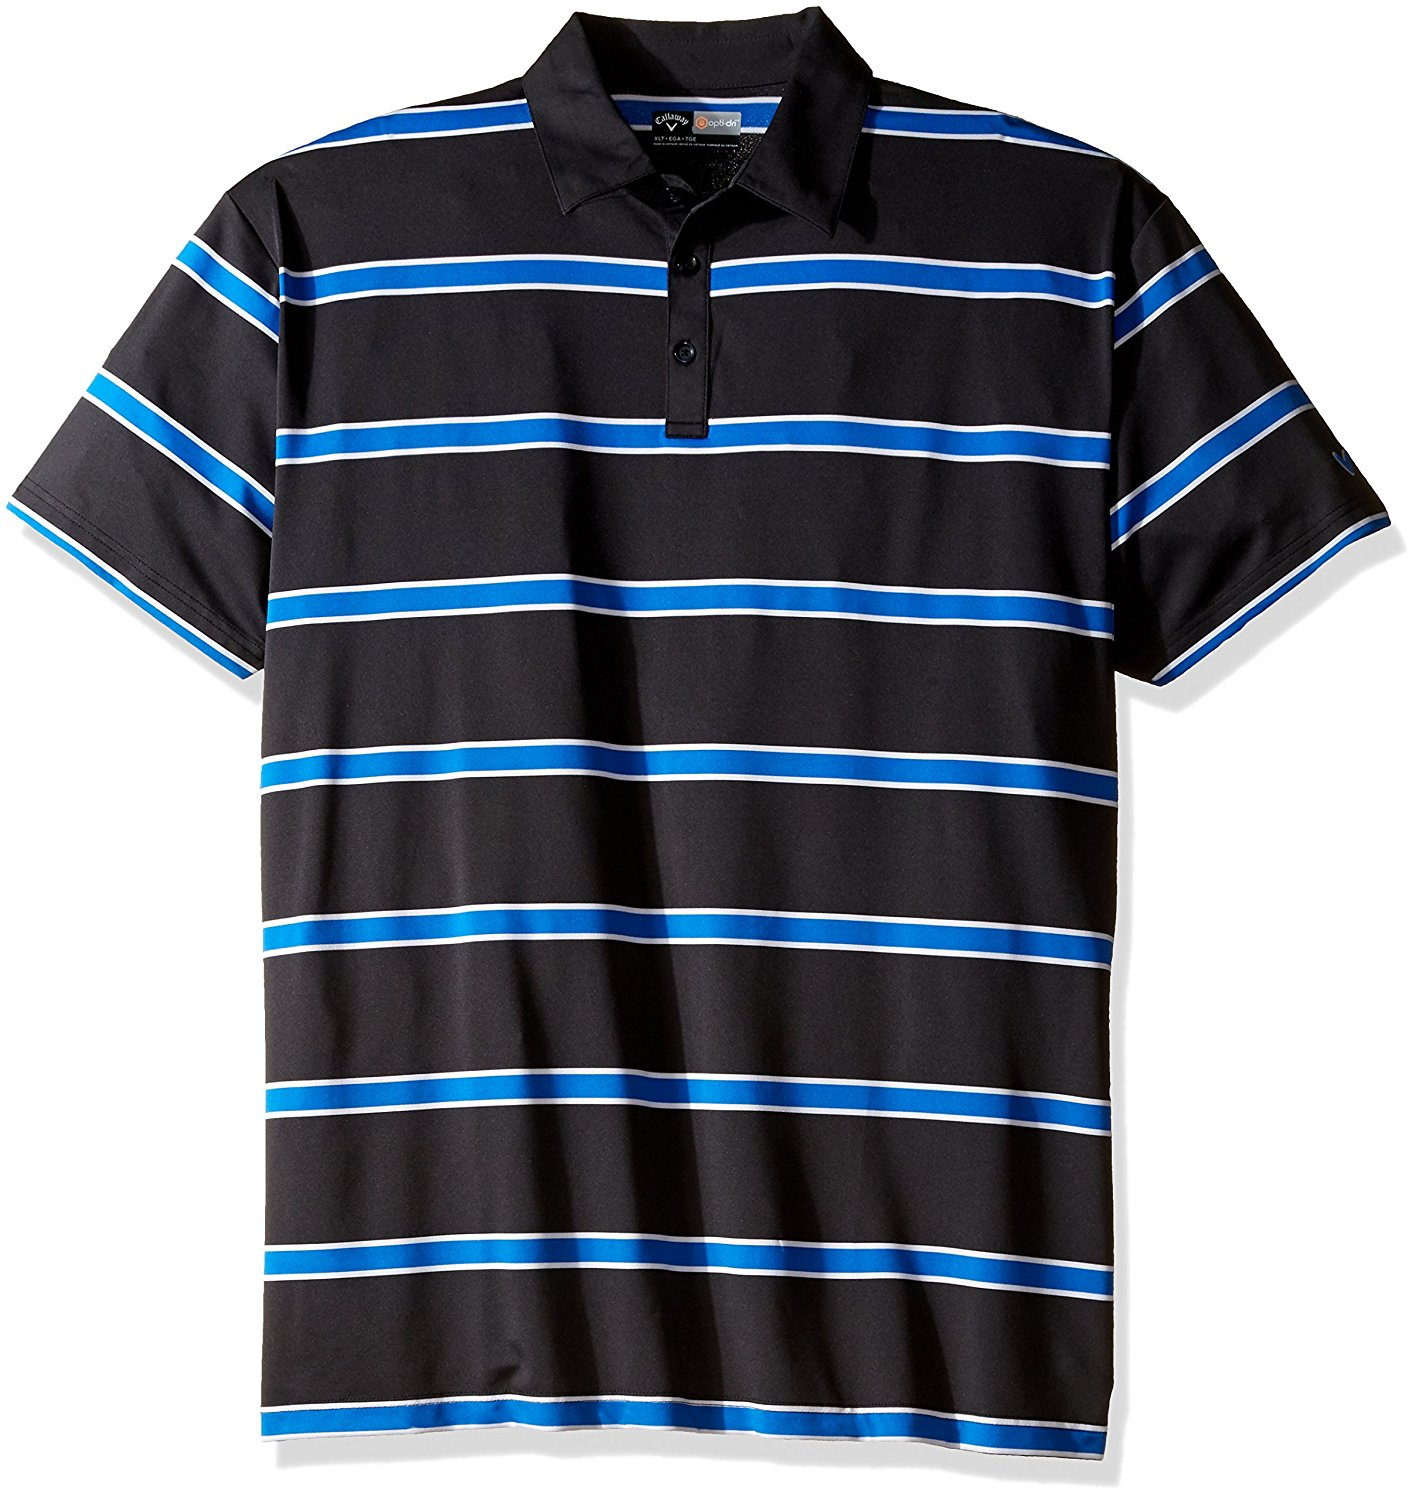 Callaway Men's Big & Tall Golf Performance Short Sleeve Rugby Striped Polo Shirt